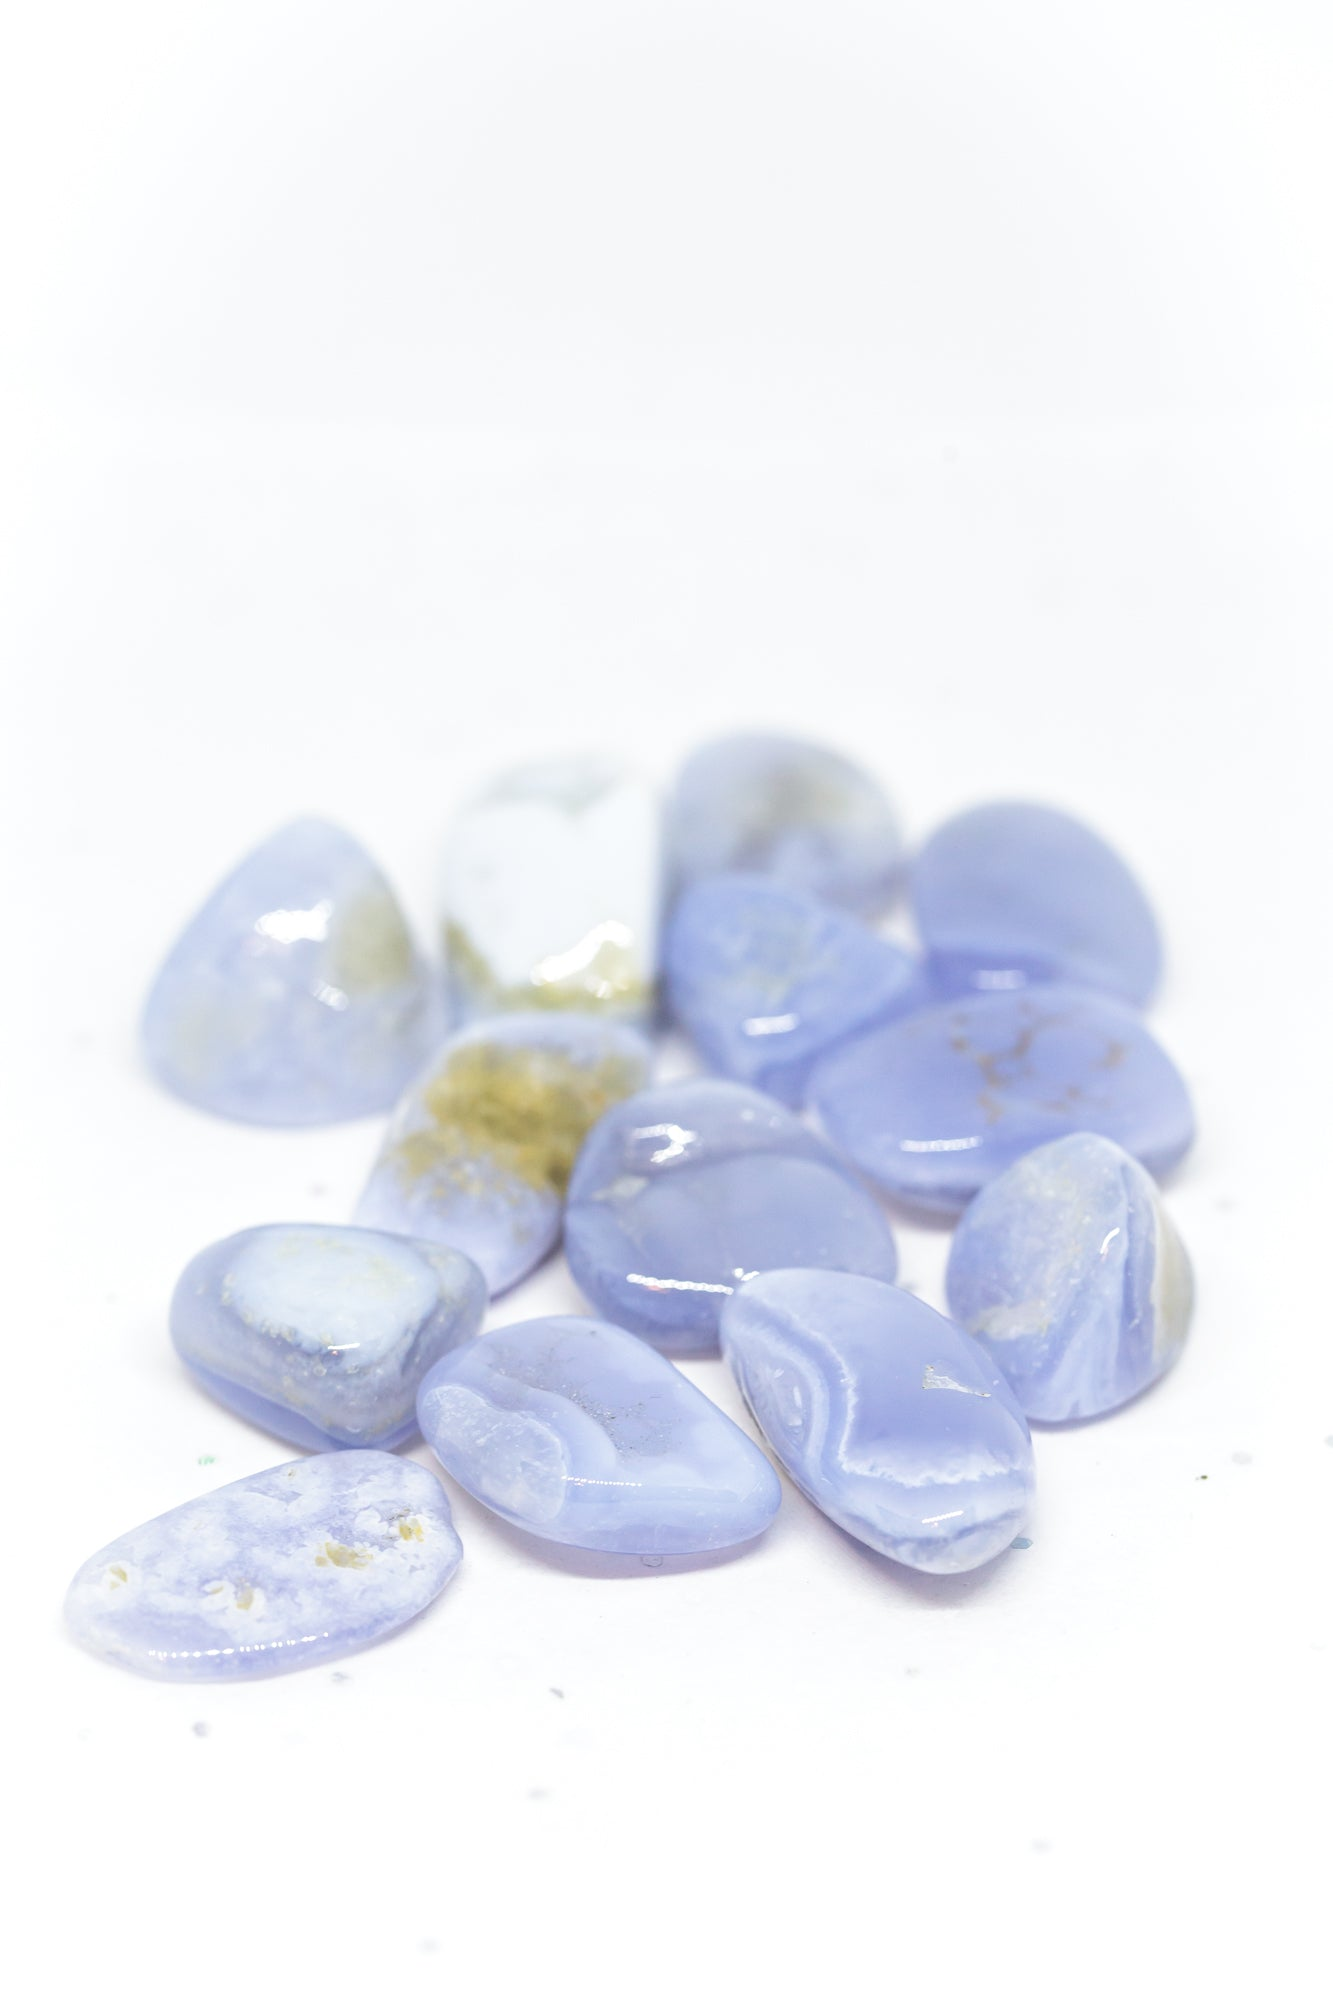 Blue Lace Agate Tumbled, X-Small